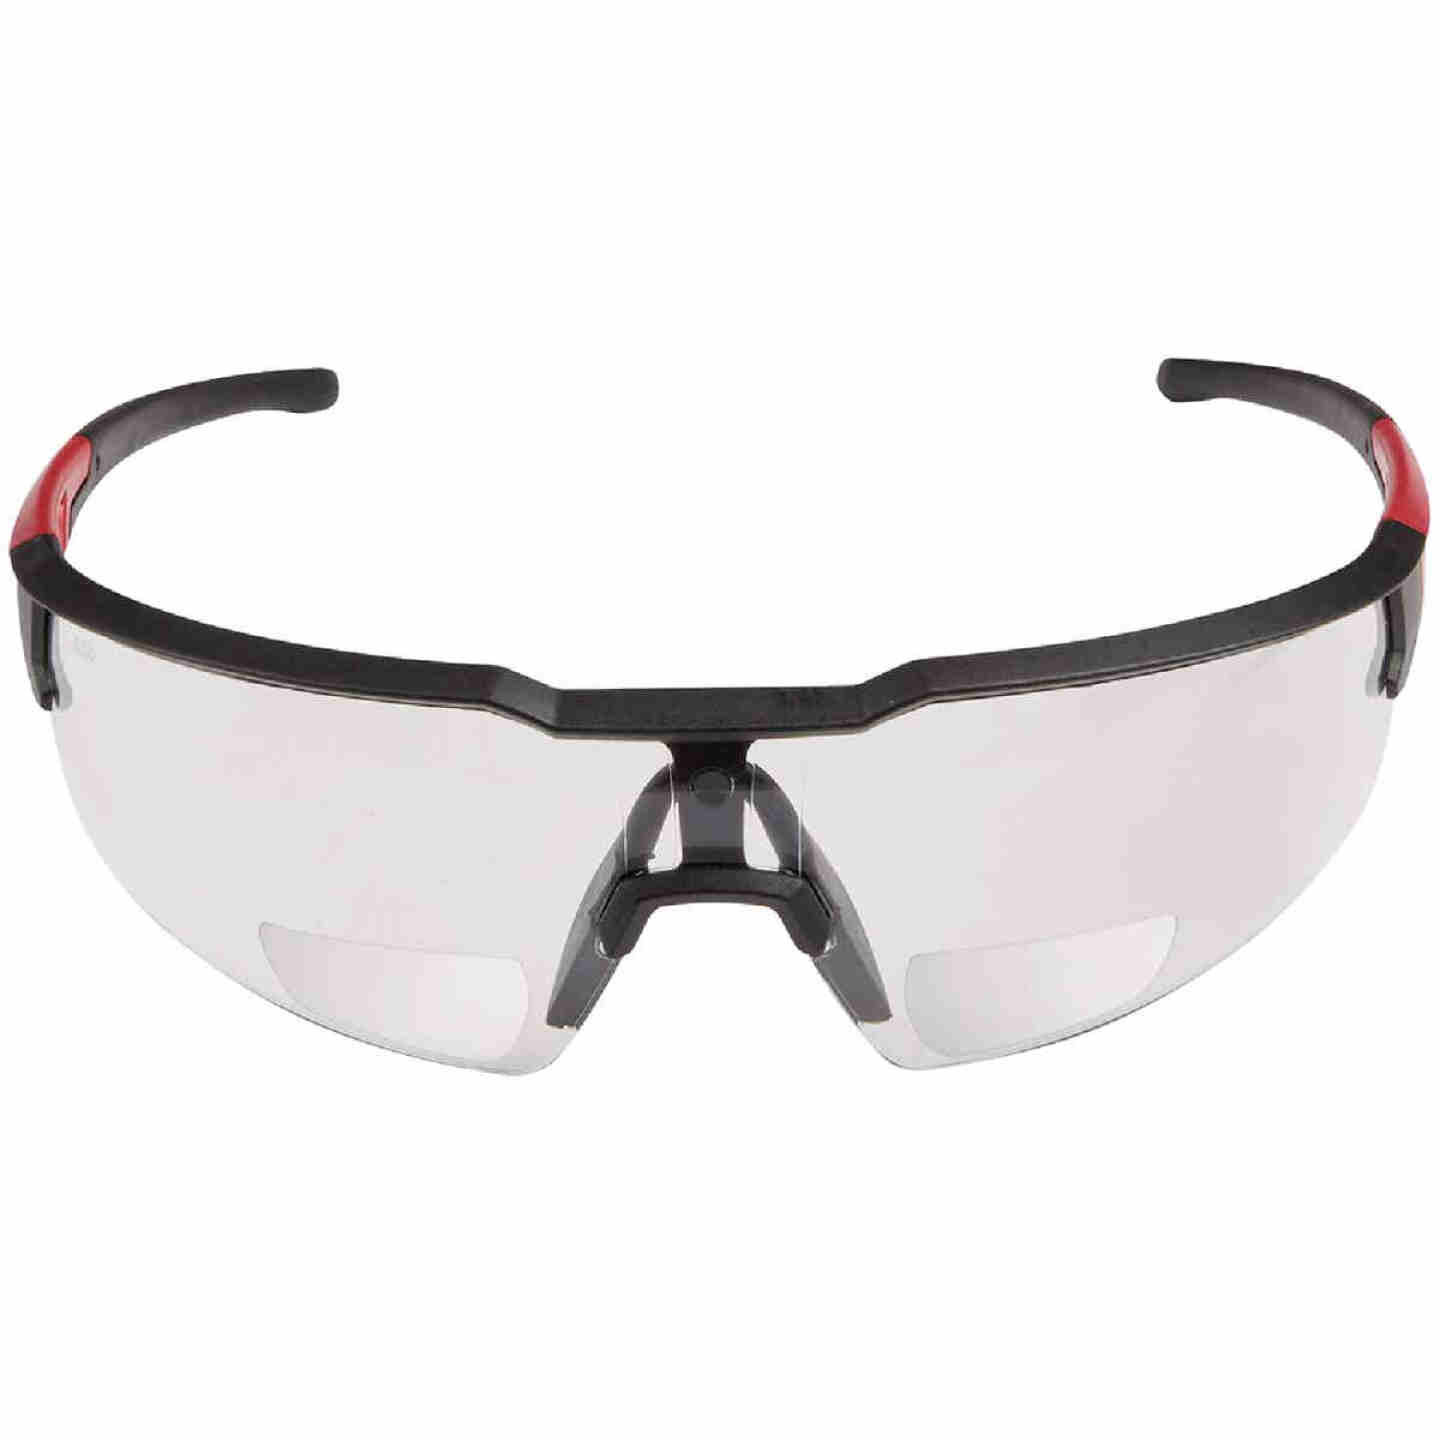 Milwaukee Red & Black Frame Safety Glasses with +2.00 Magnified Clear Anti-Scratch Lenses Image 3